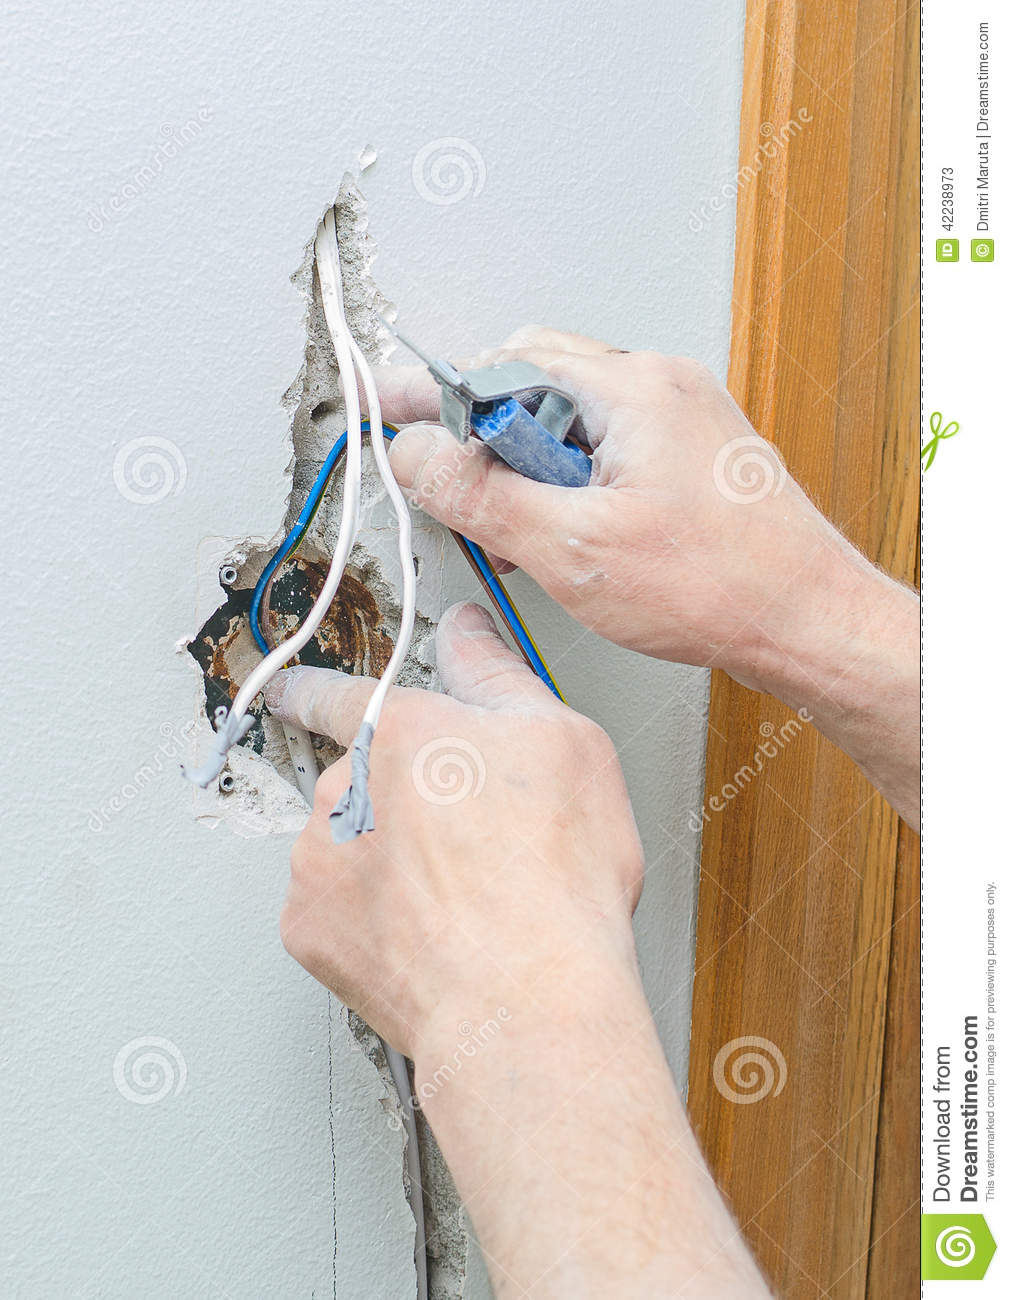 Certified Electrician Installing Socket Stock Image Of Hands Wiring Receptacle From Light